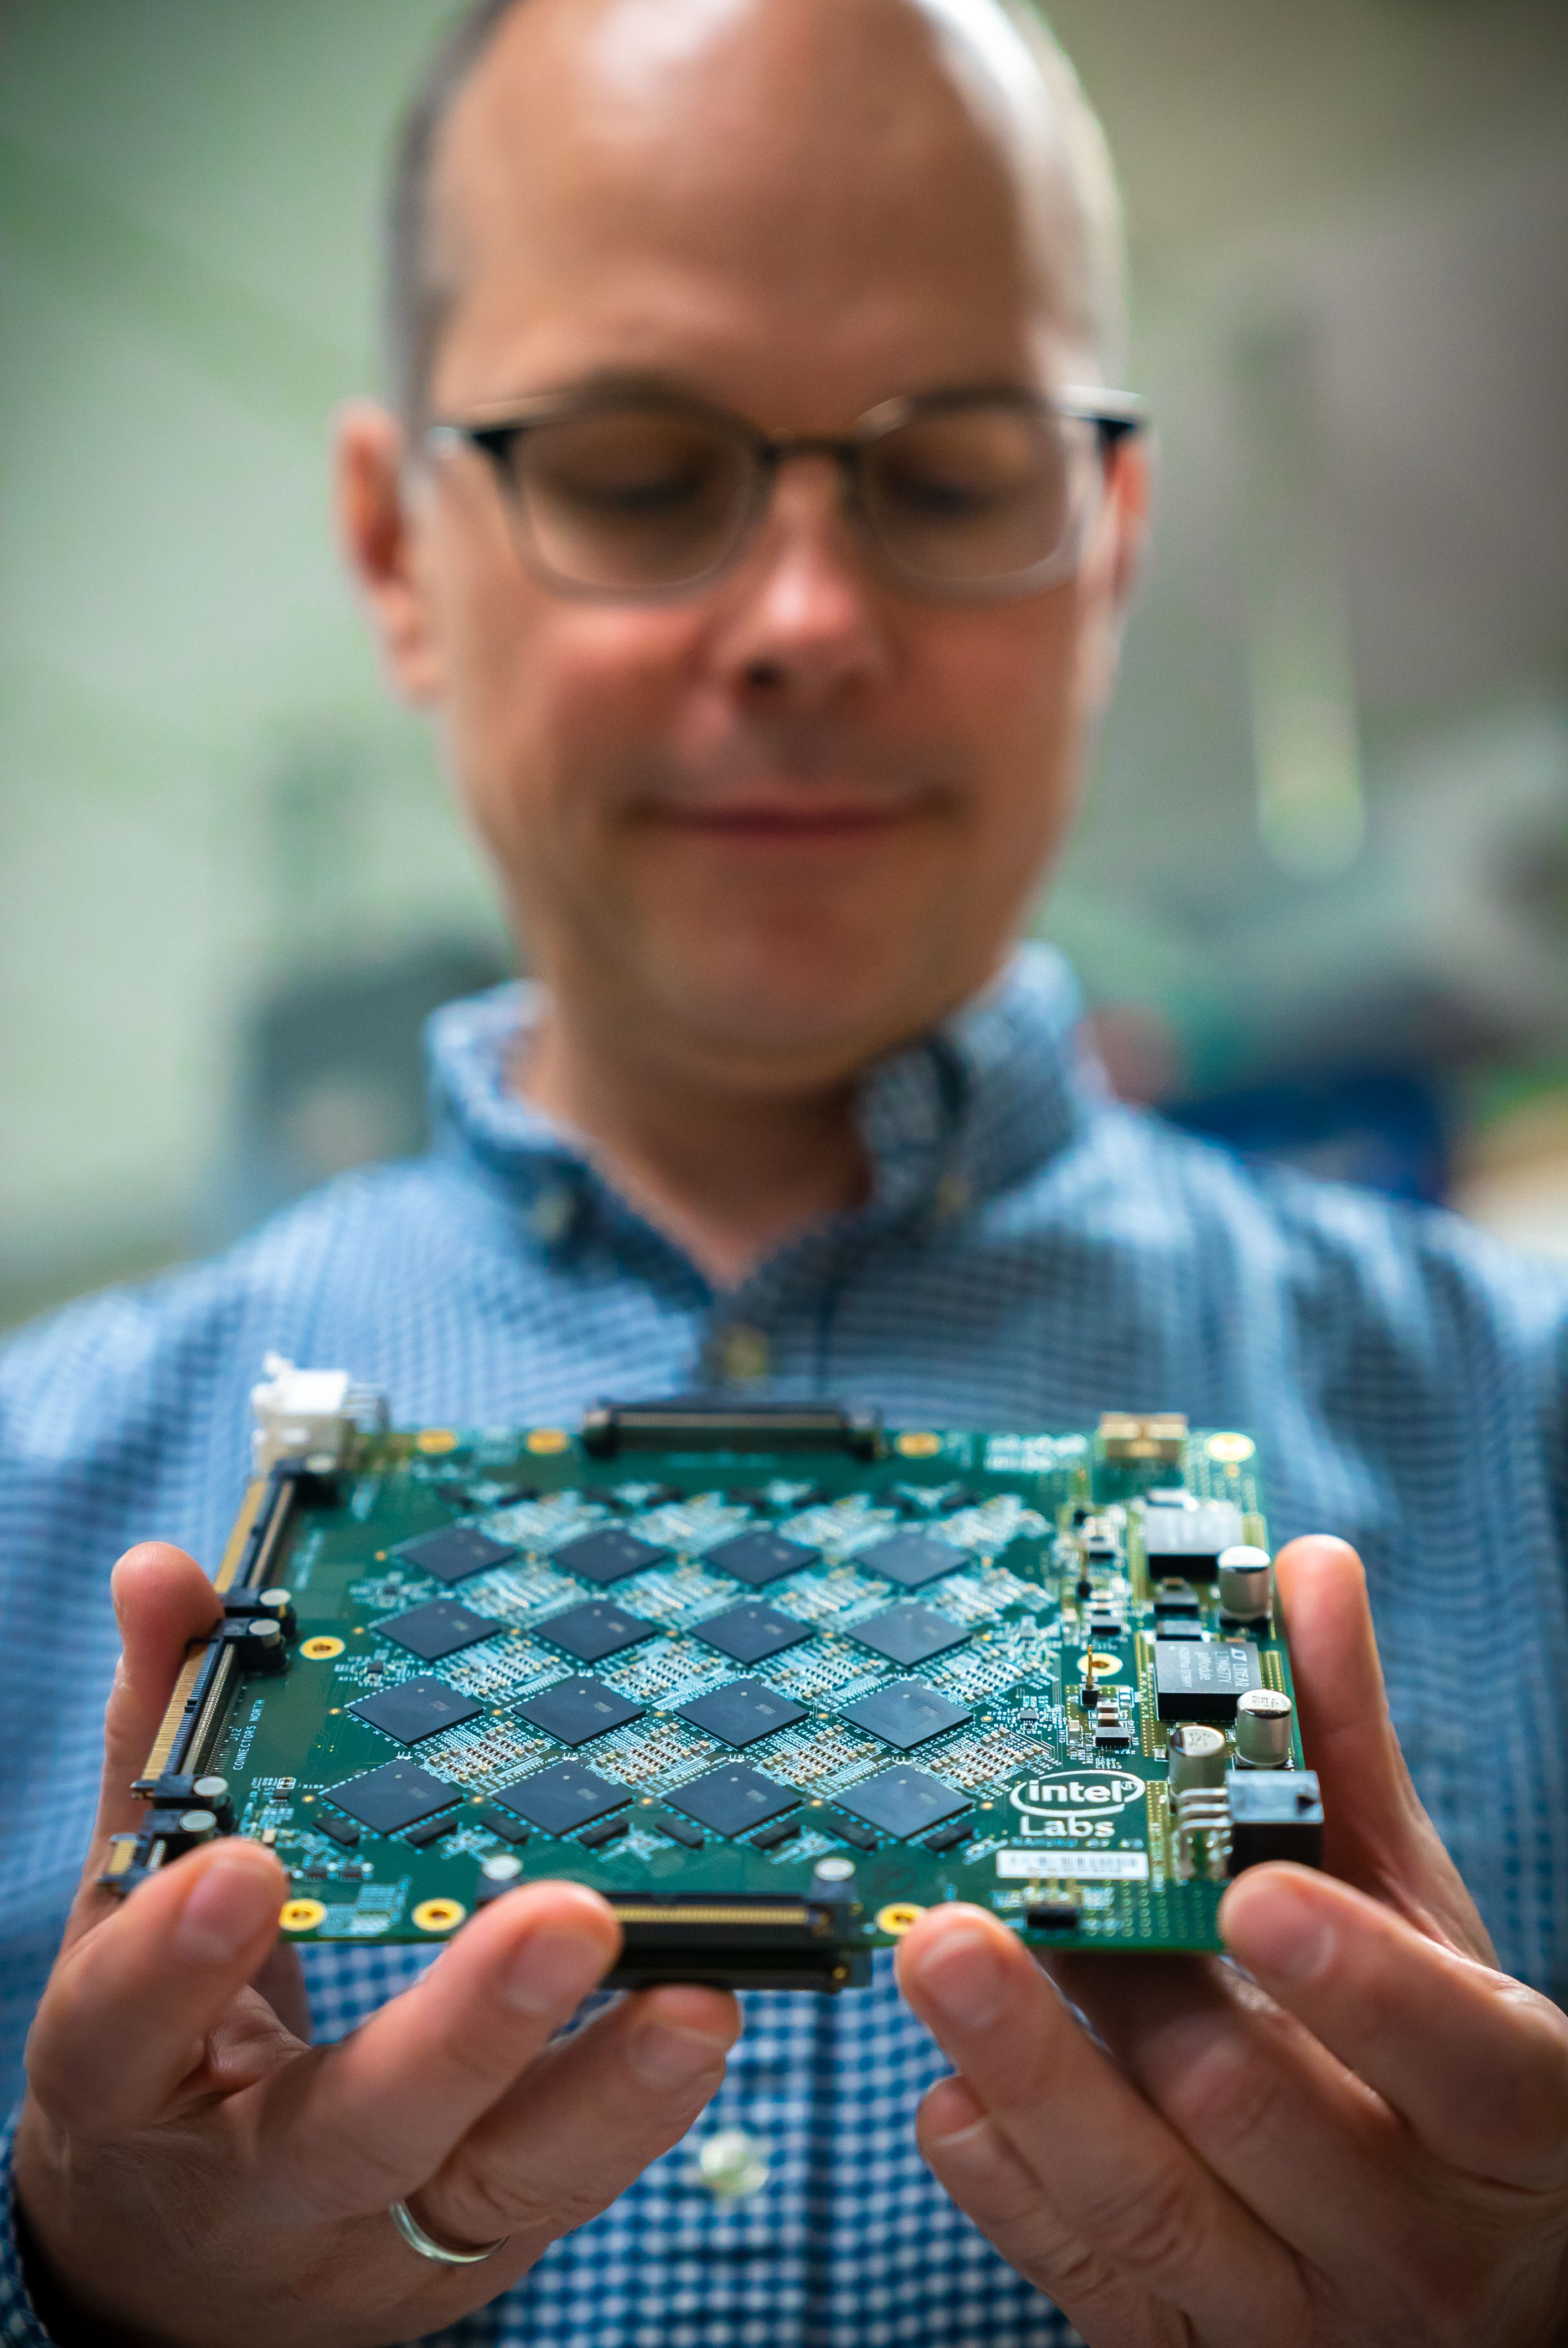 Rich Uhlig, managing director of Intel Labs, holds one of Intel's Nahuku boards, each of which contains 8 to 32 Intel Loihi neuromorphic chips. (Photo credit: Intel)